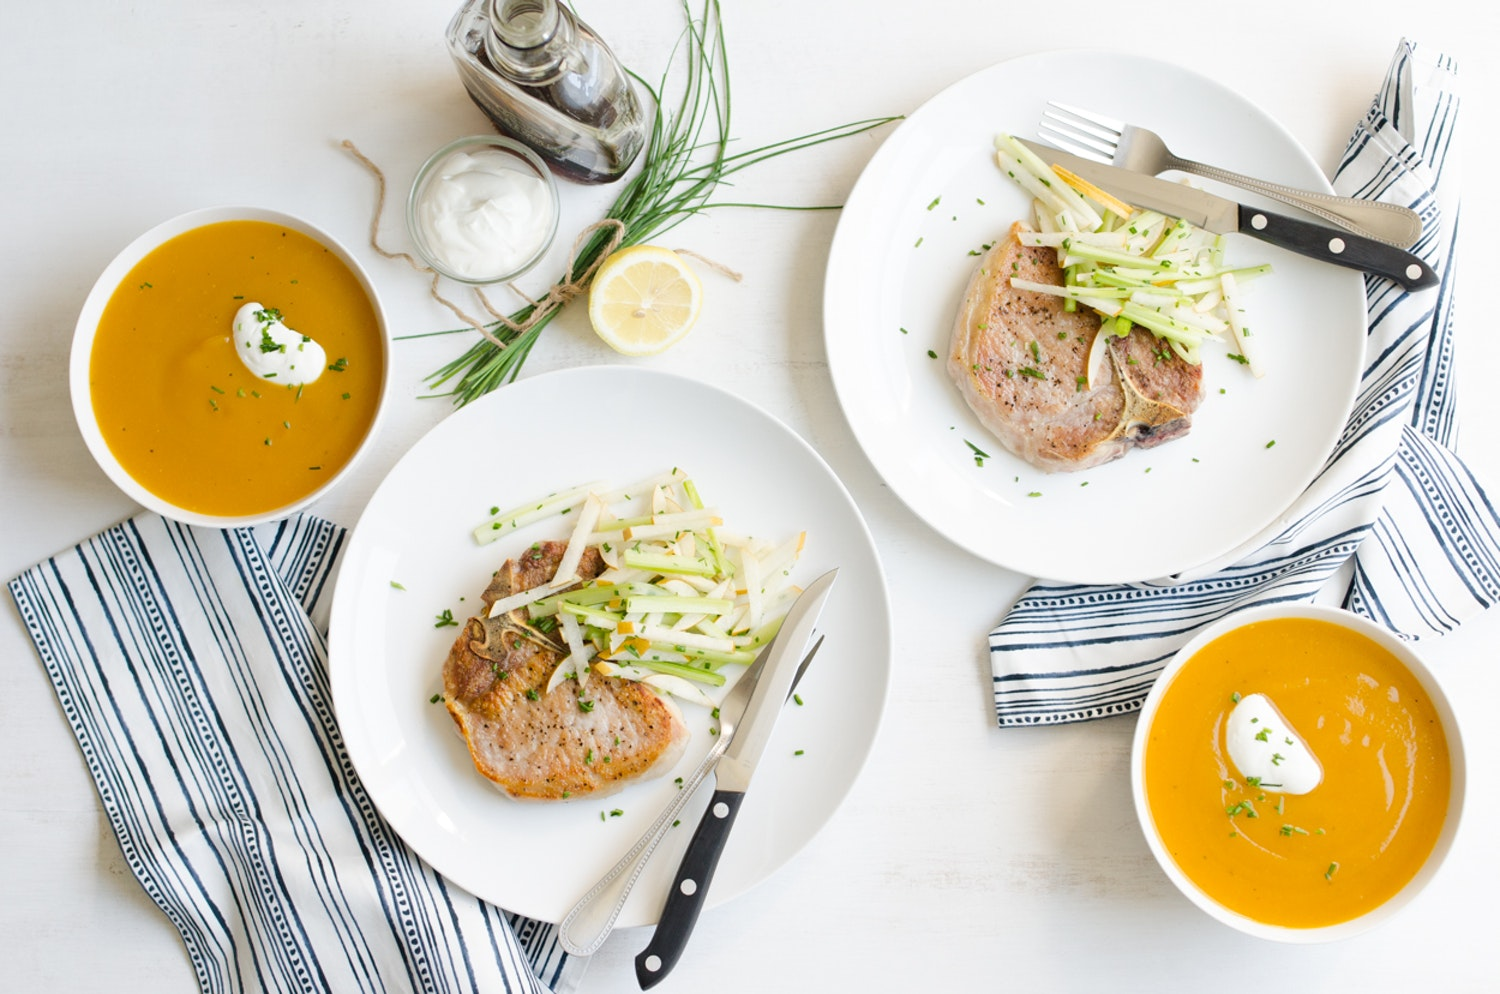 20181029 pork chops with celery slaw nm 3.jpg?ixlib=rails 2.1